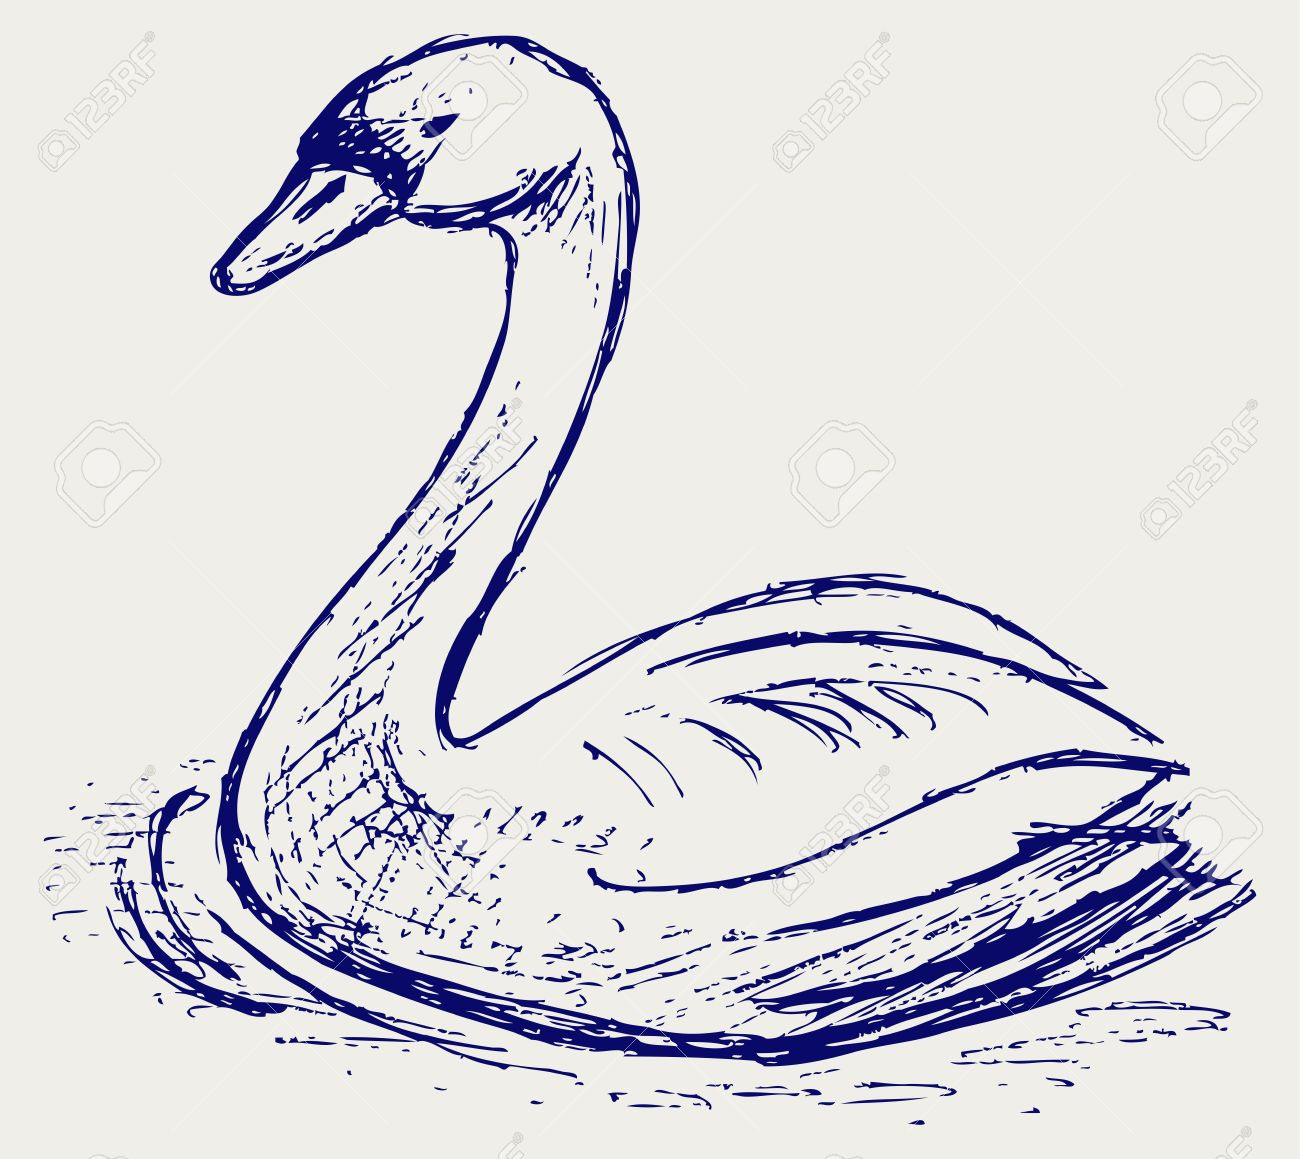 swan sketch stock vector 15831729